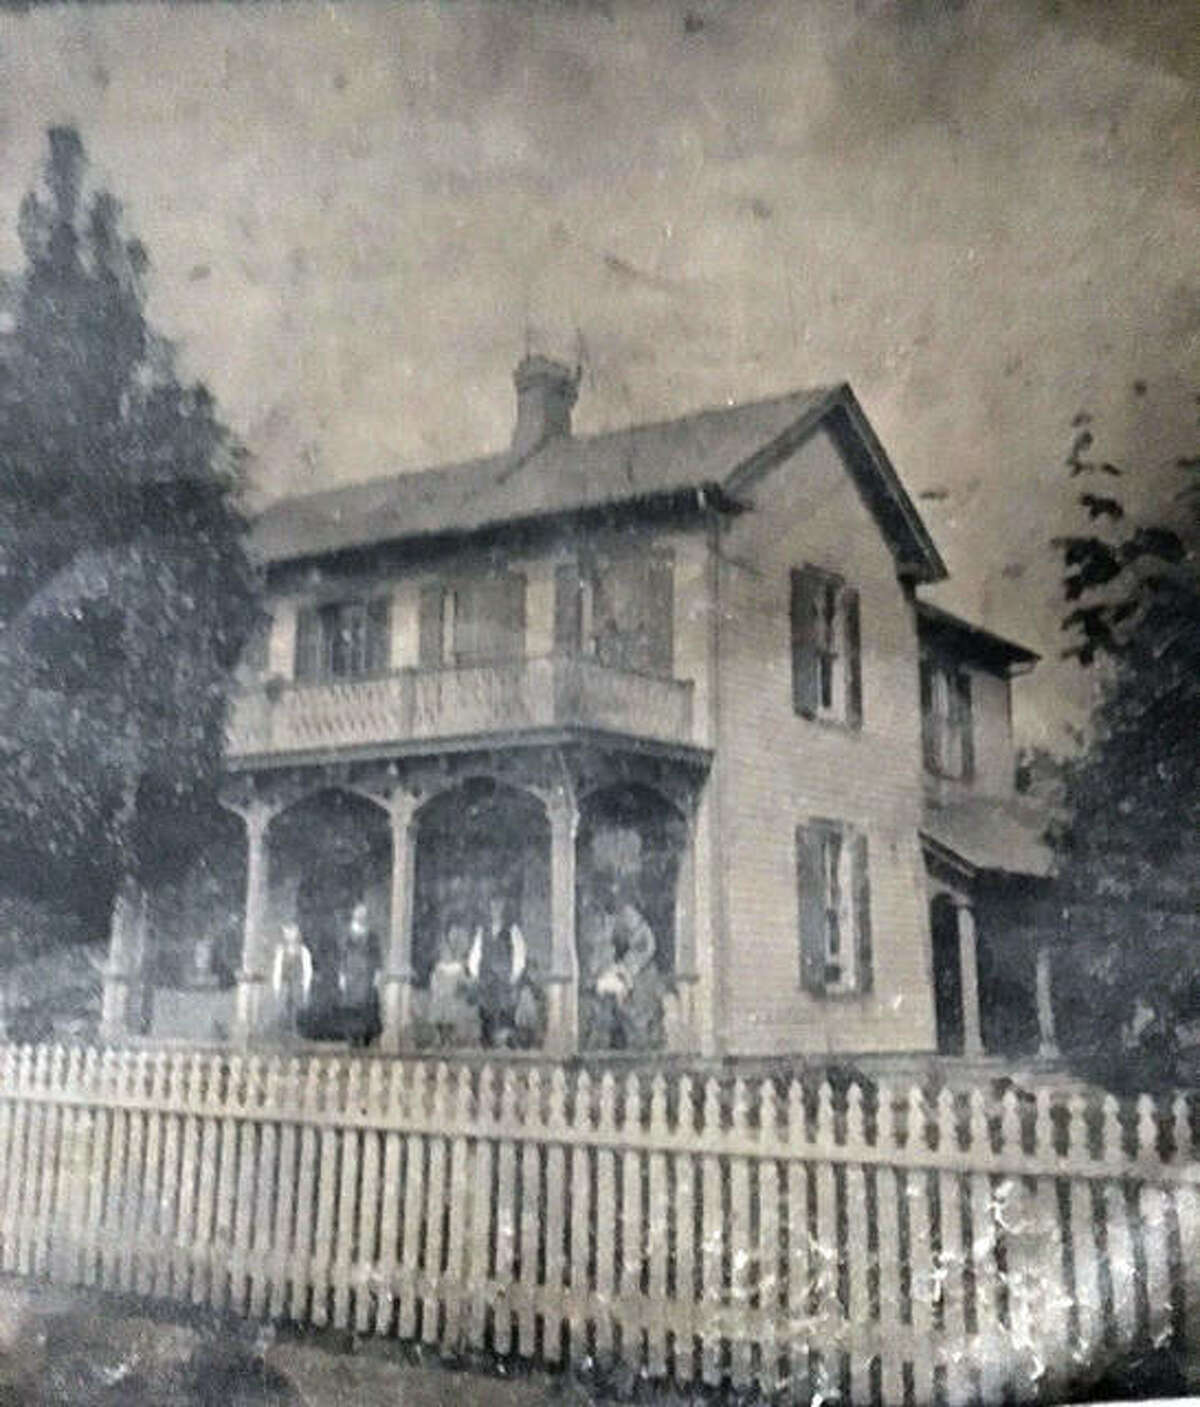 Pictured is the Hartung residence that stood at 119 South Main Street from 1882 to 1930, when it was replaced by the Illinois Bell Telephone Company switching station. The image is a tintype from the 1890s. The home was first owned by Louis H. Hartung Sr., then by his son, Louis H. Hartung Jr. In Oct. 1930, Hartung Jr. was forced to sell. Clyde Hartung, Edwardsville Mayor from 1973 to 1977, identified the home for one of his nephews, who submitted the image.